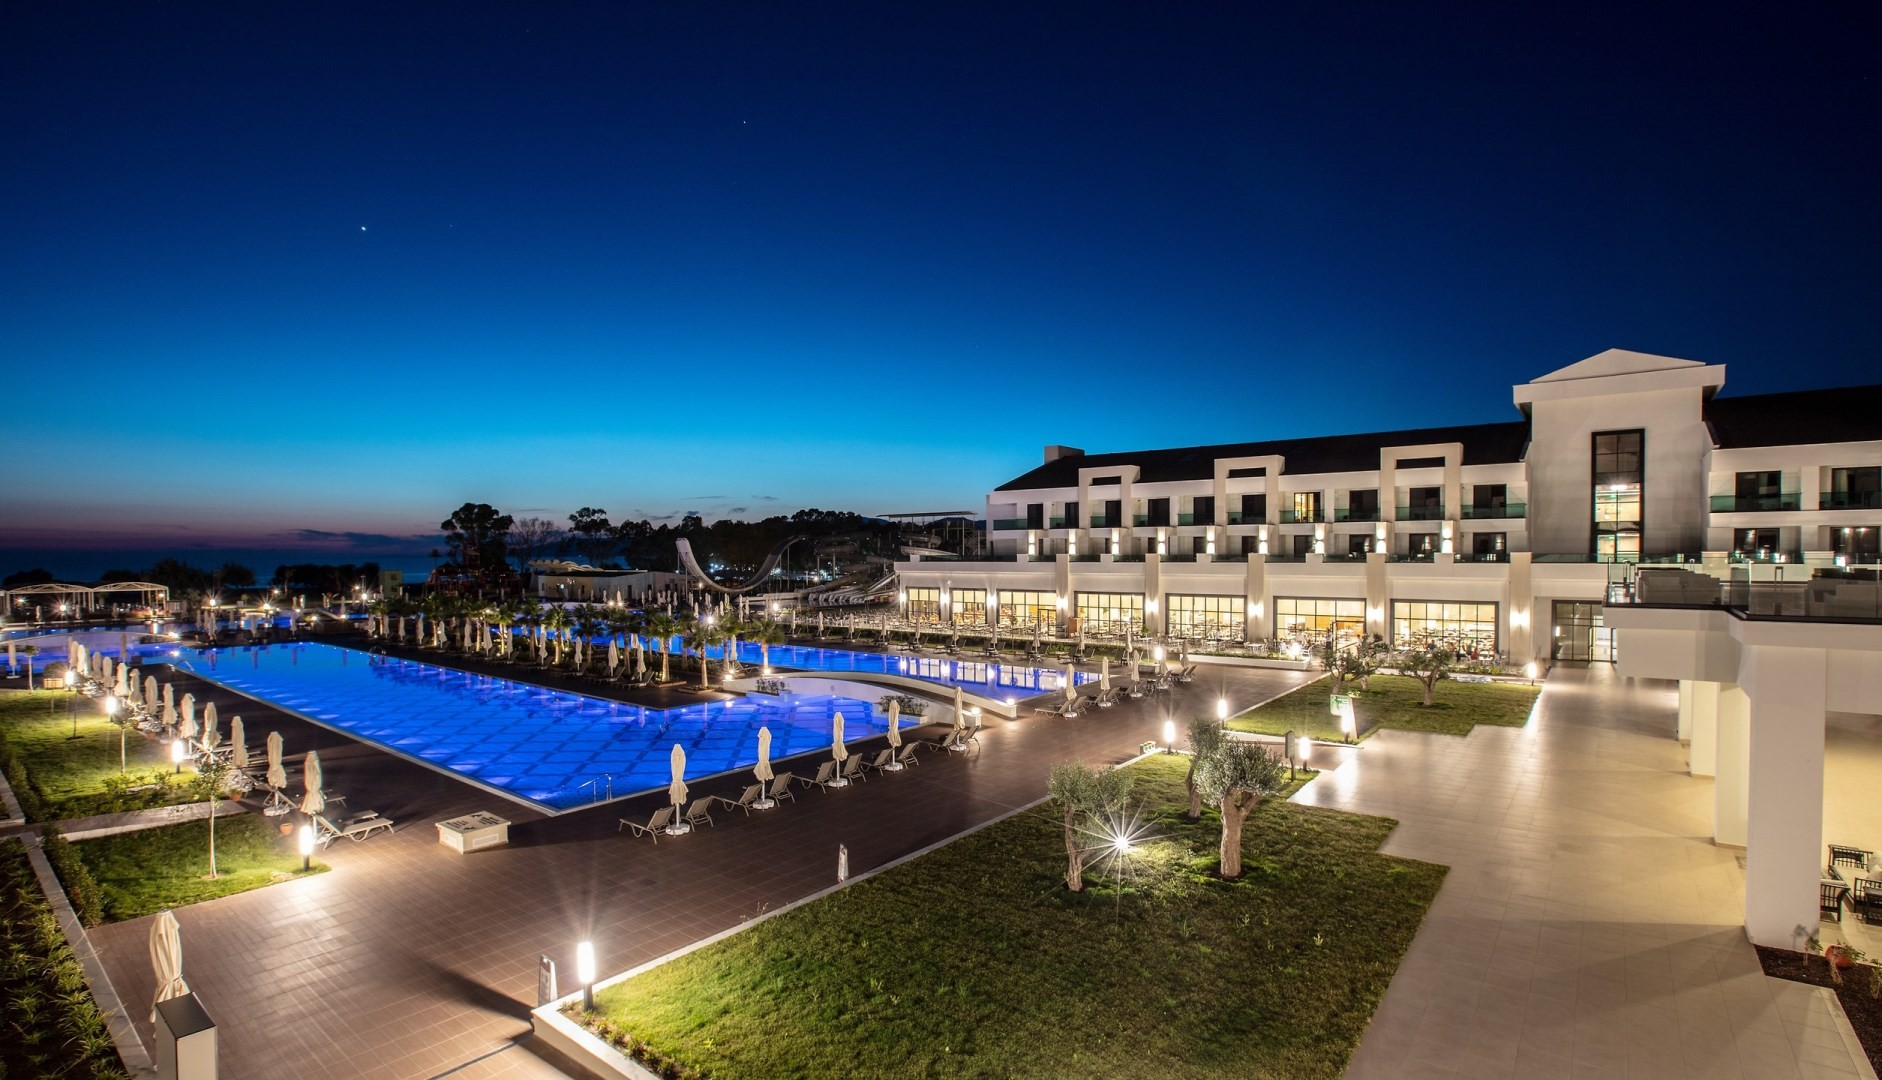 KoruMar Ephesus Beach & Spa Resort  - нощен изглед